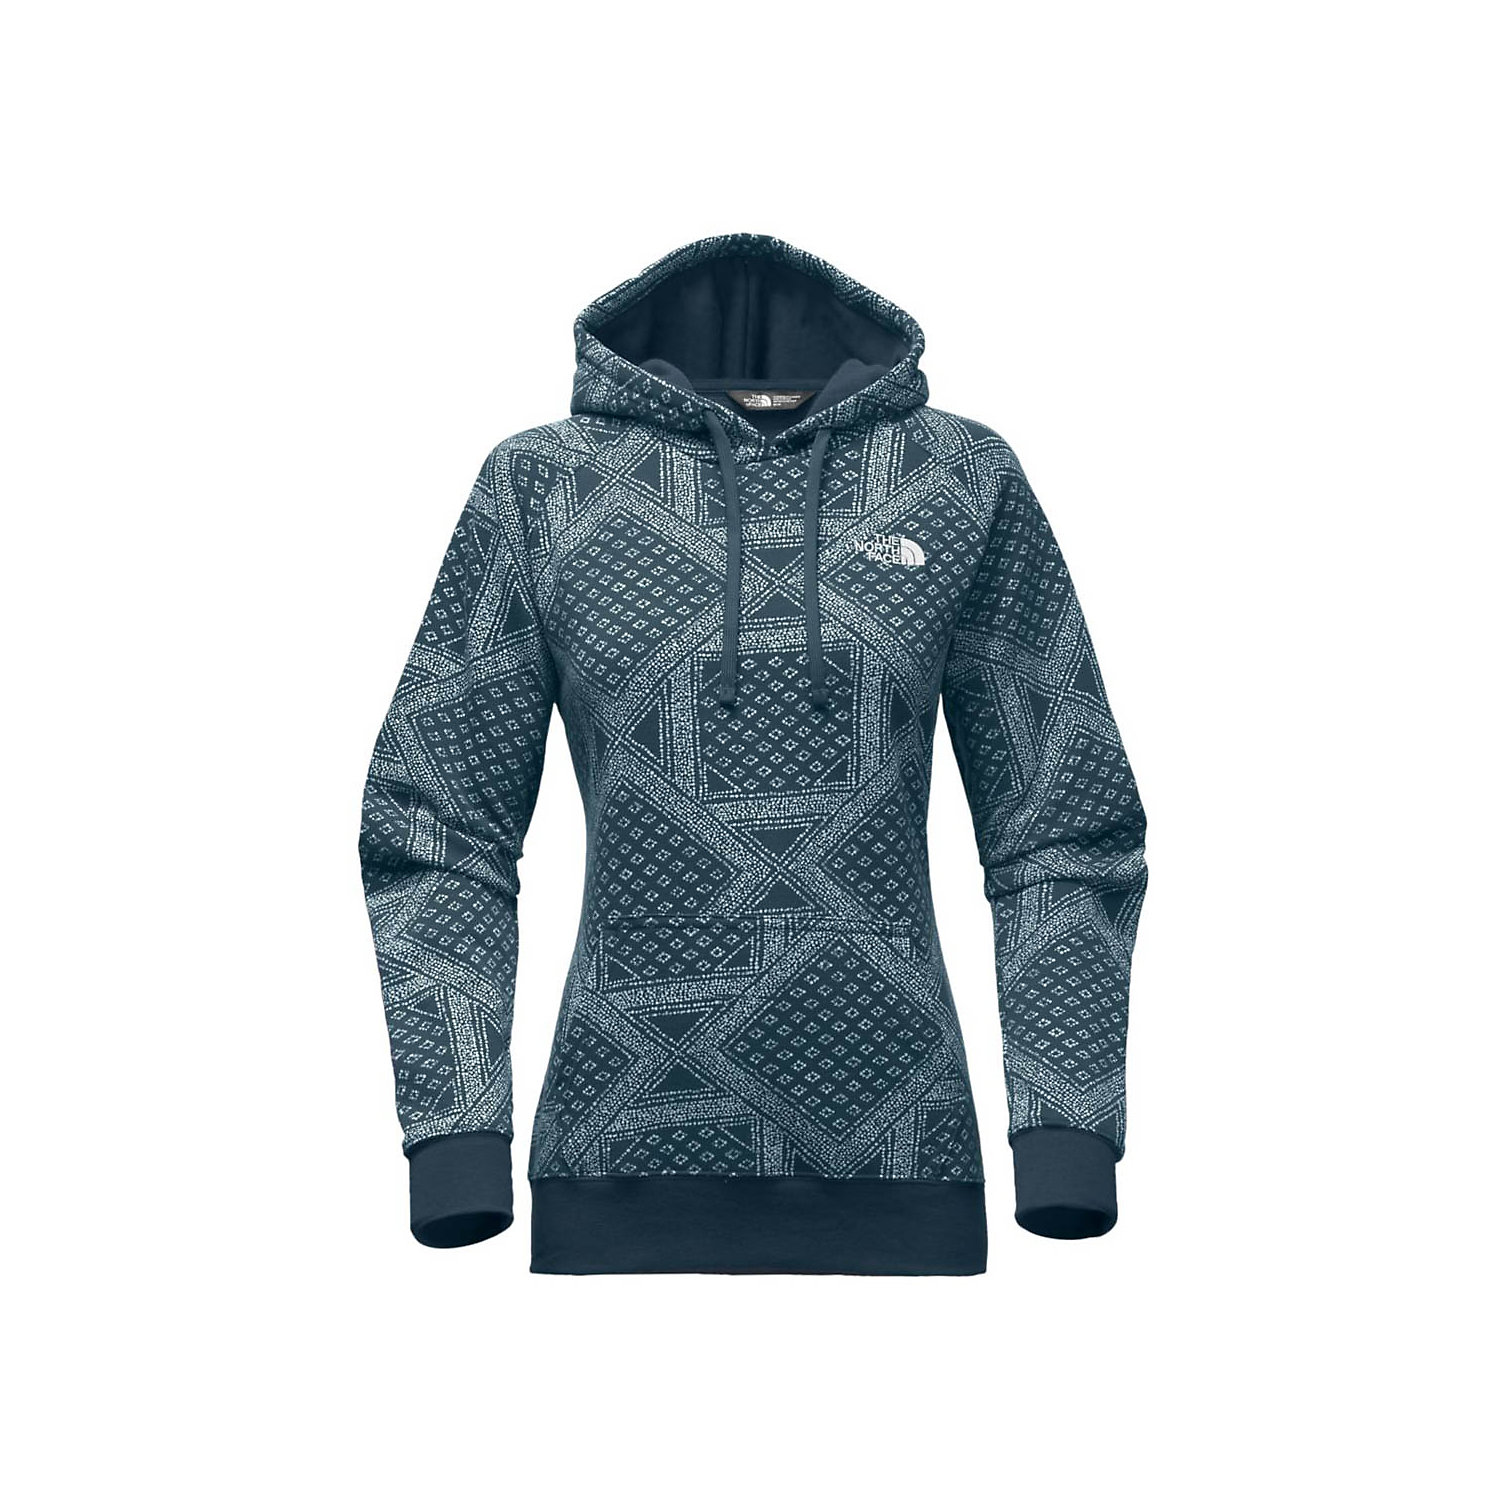 3f5c9ae68 The North Face Women's All Over Print Hoodie